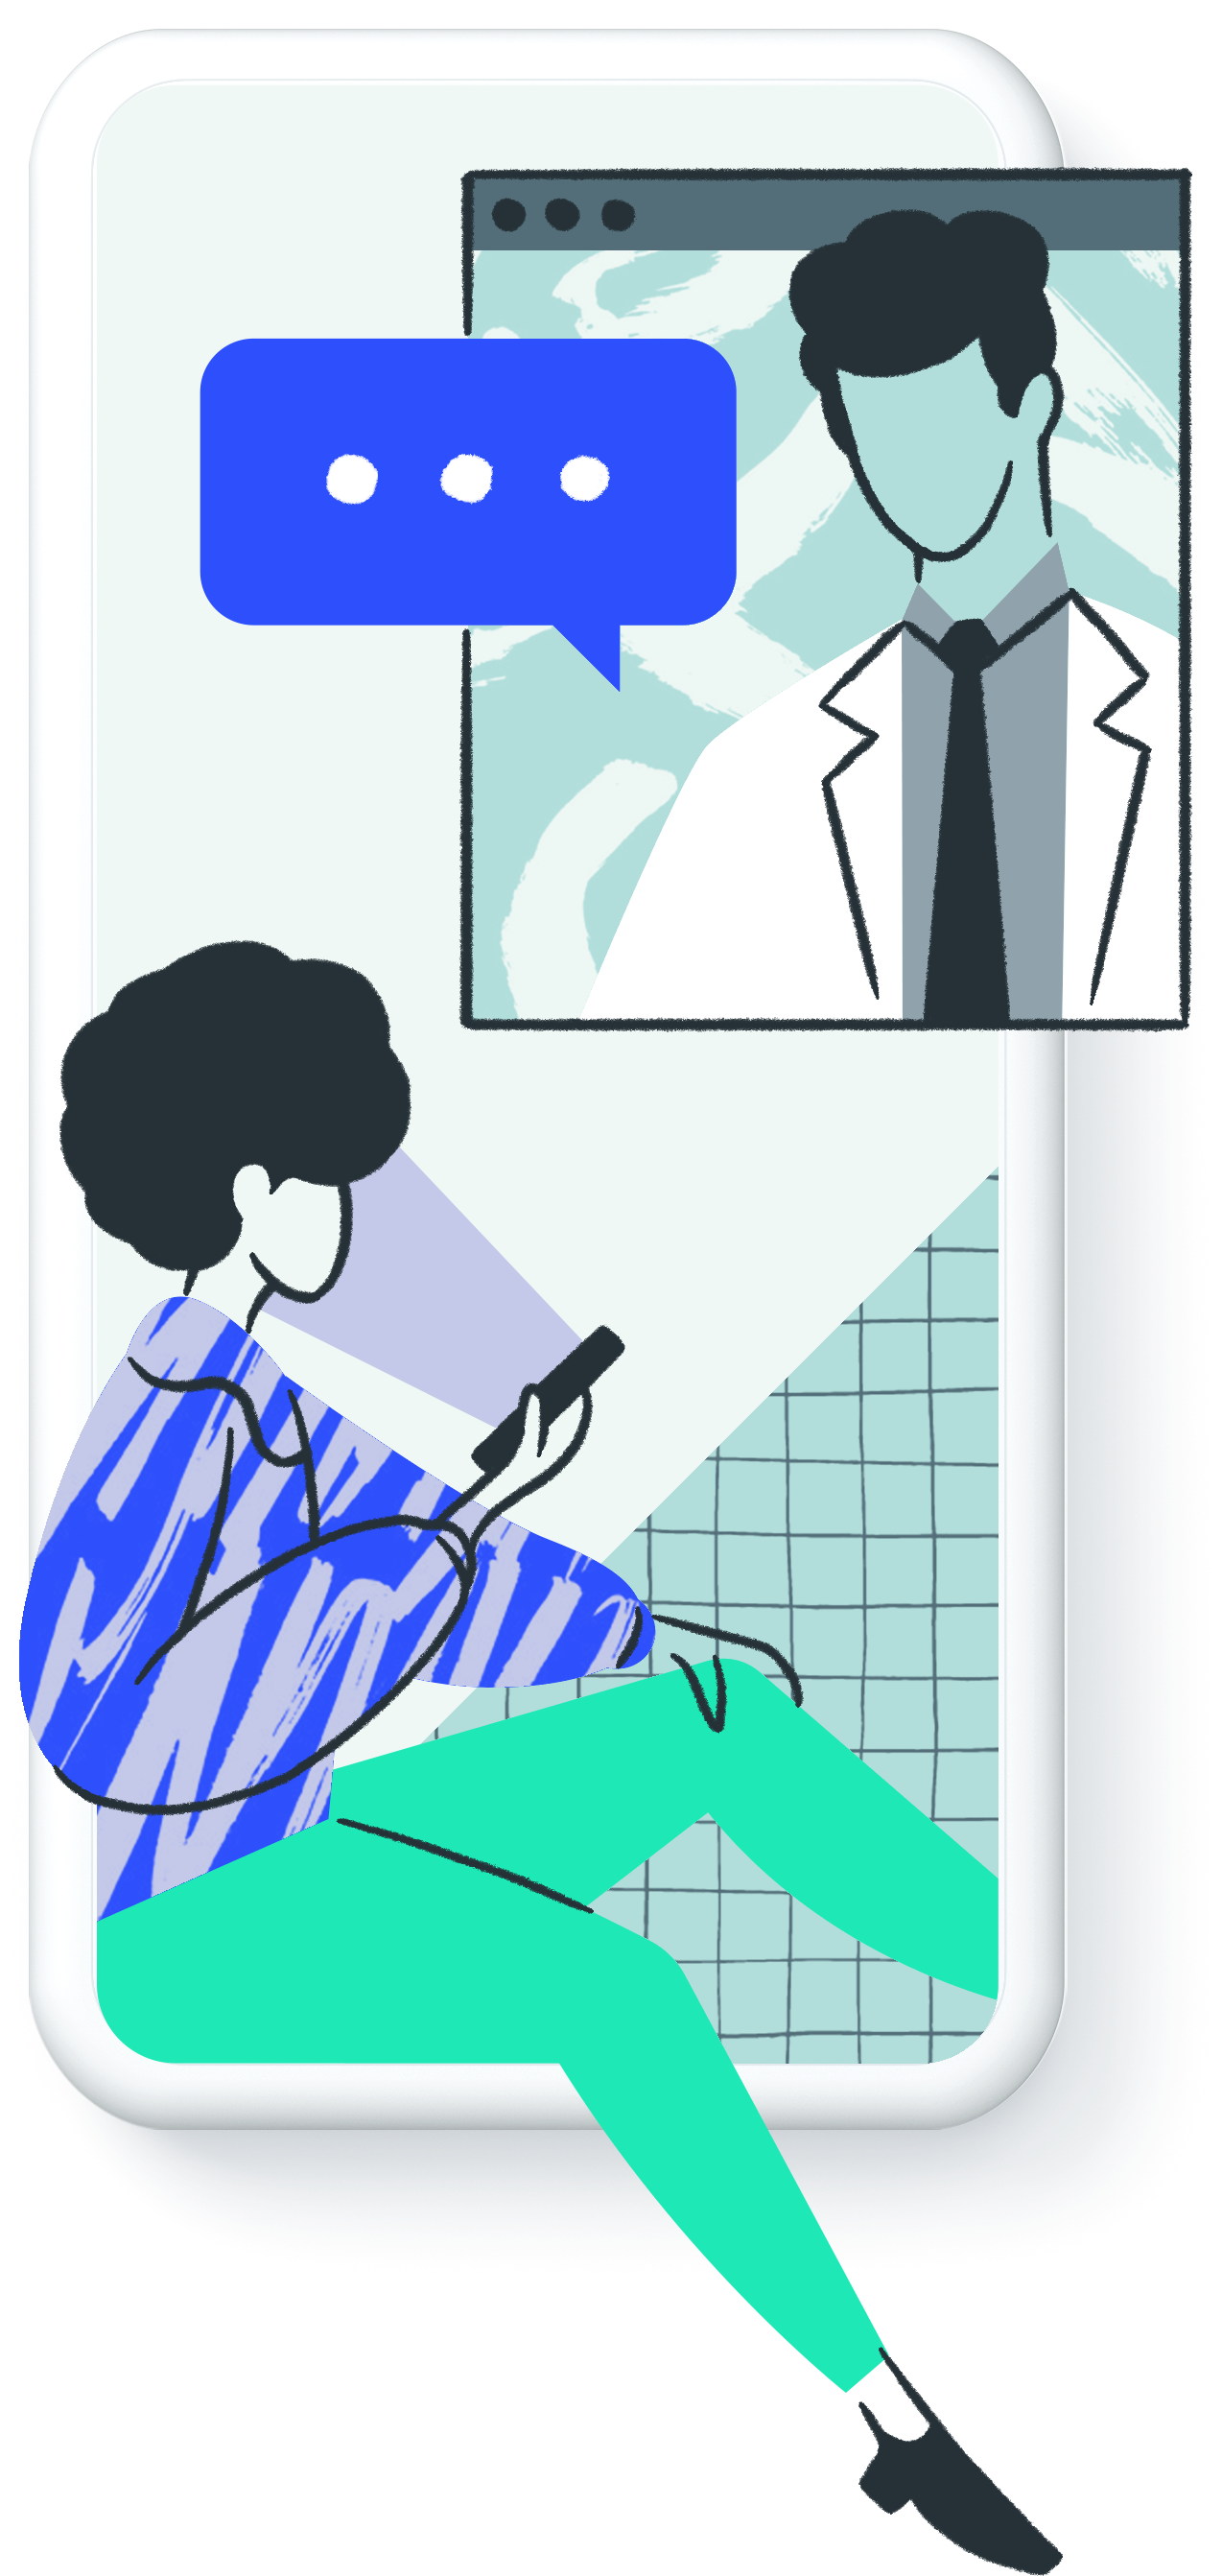 Illustration of a consultation between patient and doctor